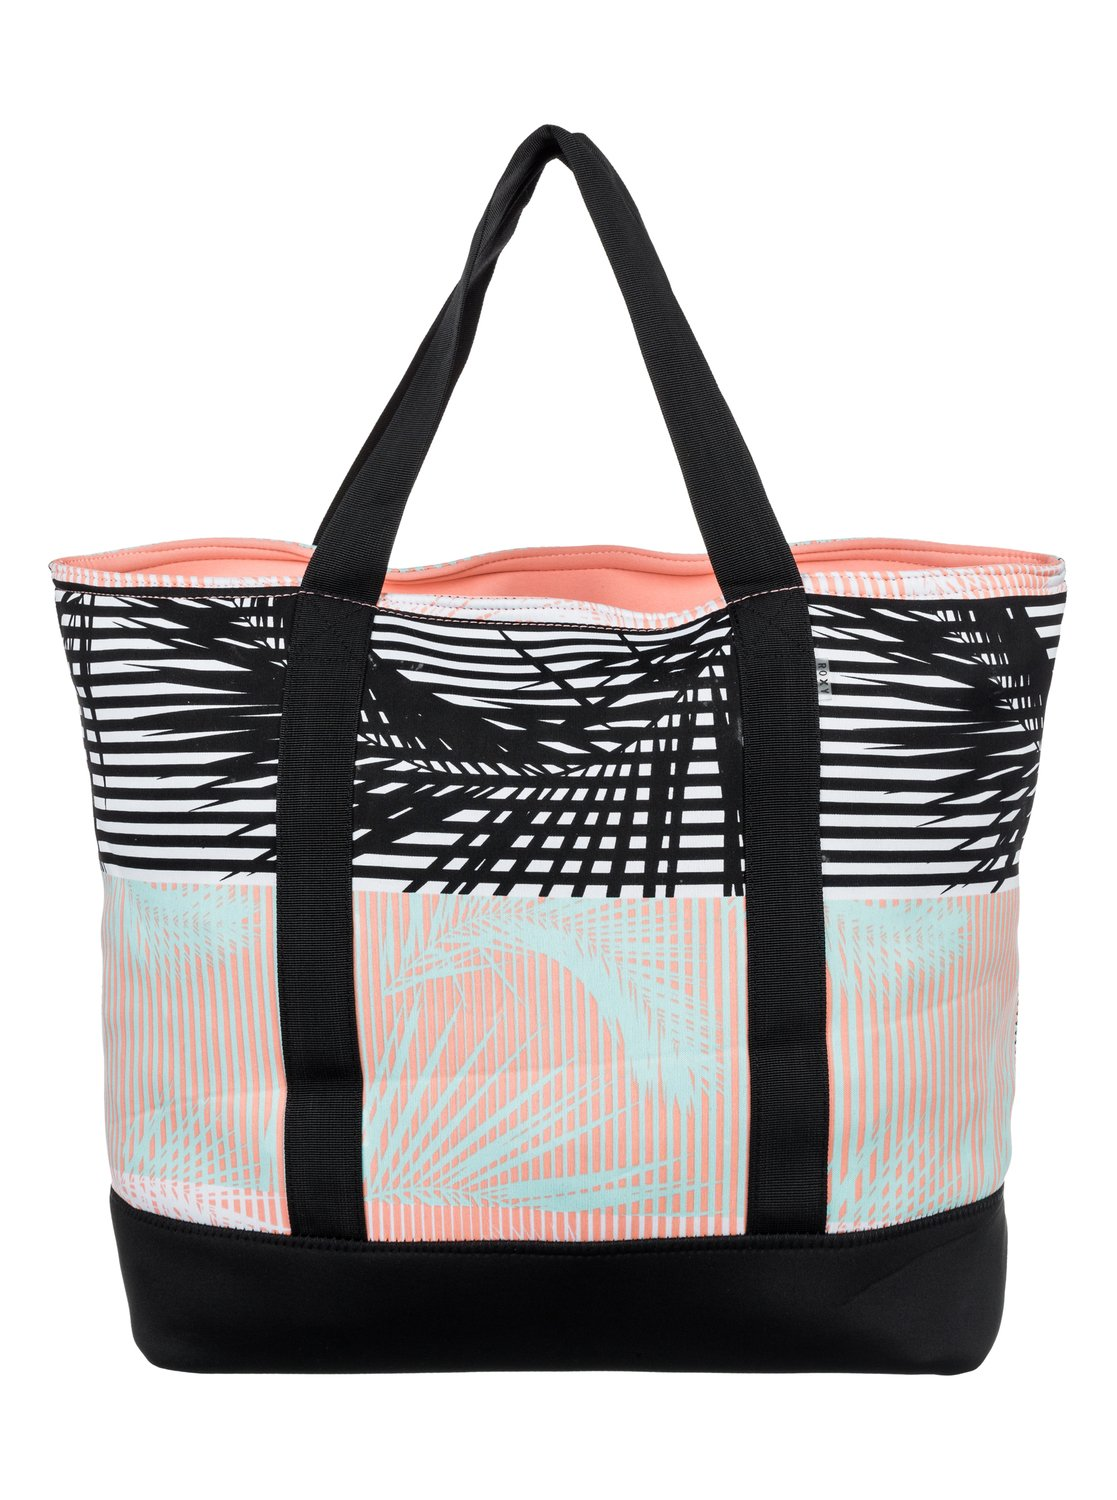 Sun Crush Tote Bag